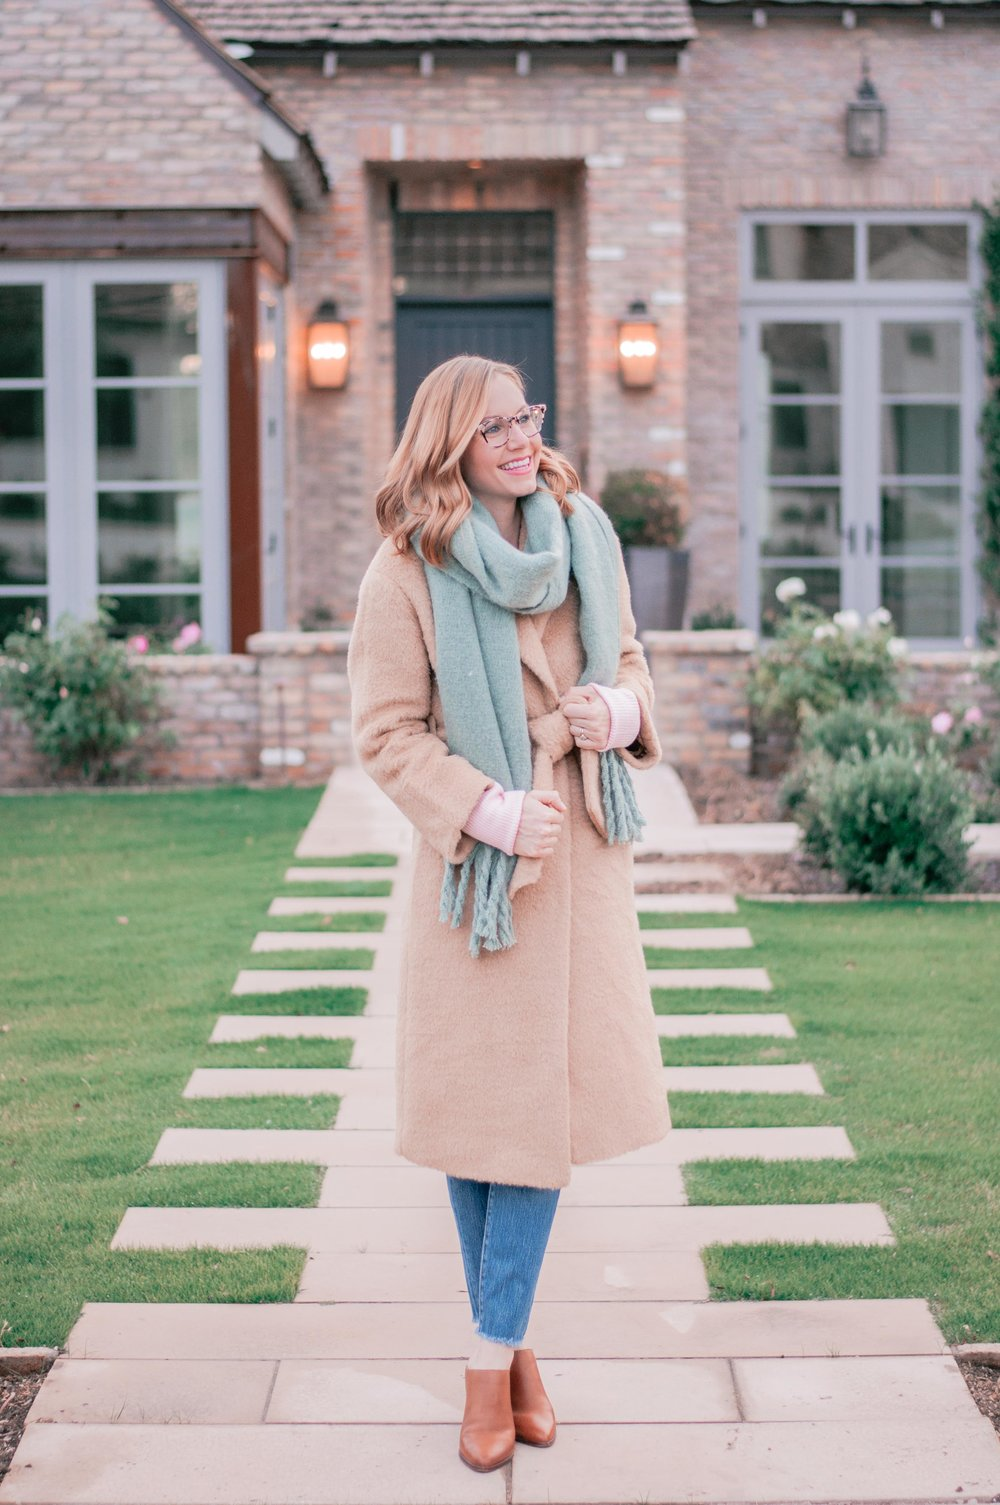 Whistles Textured Belted Coat in Camel